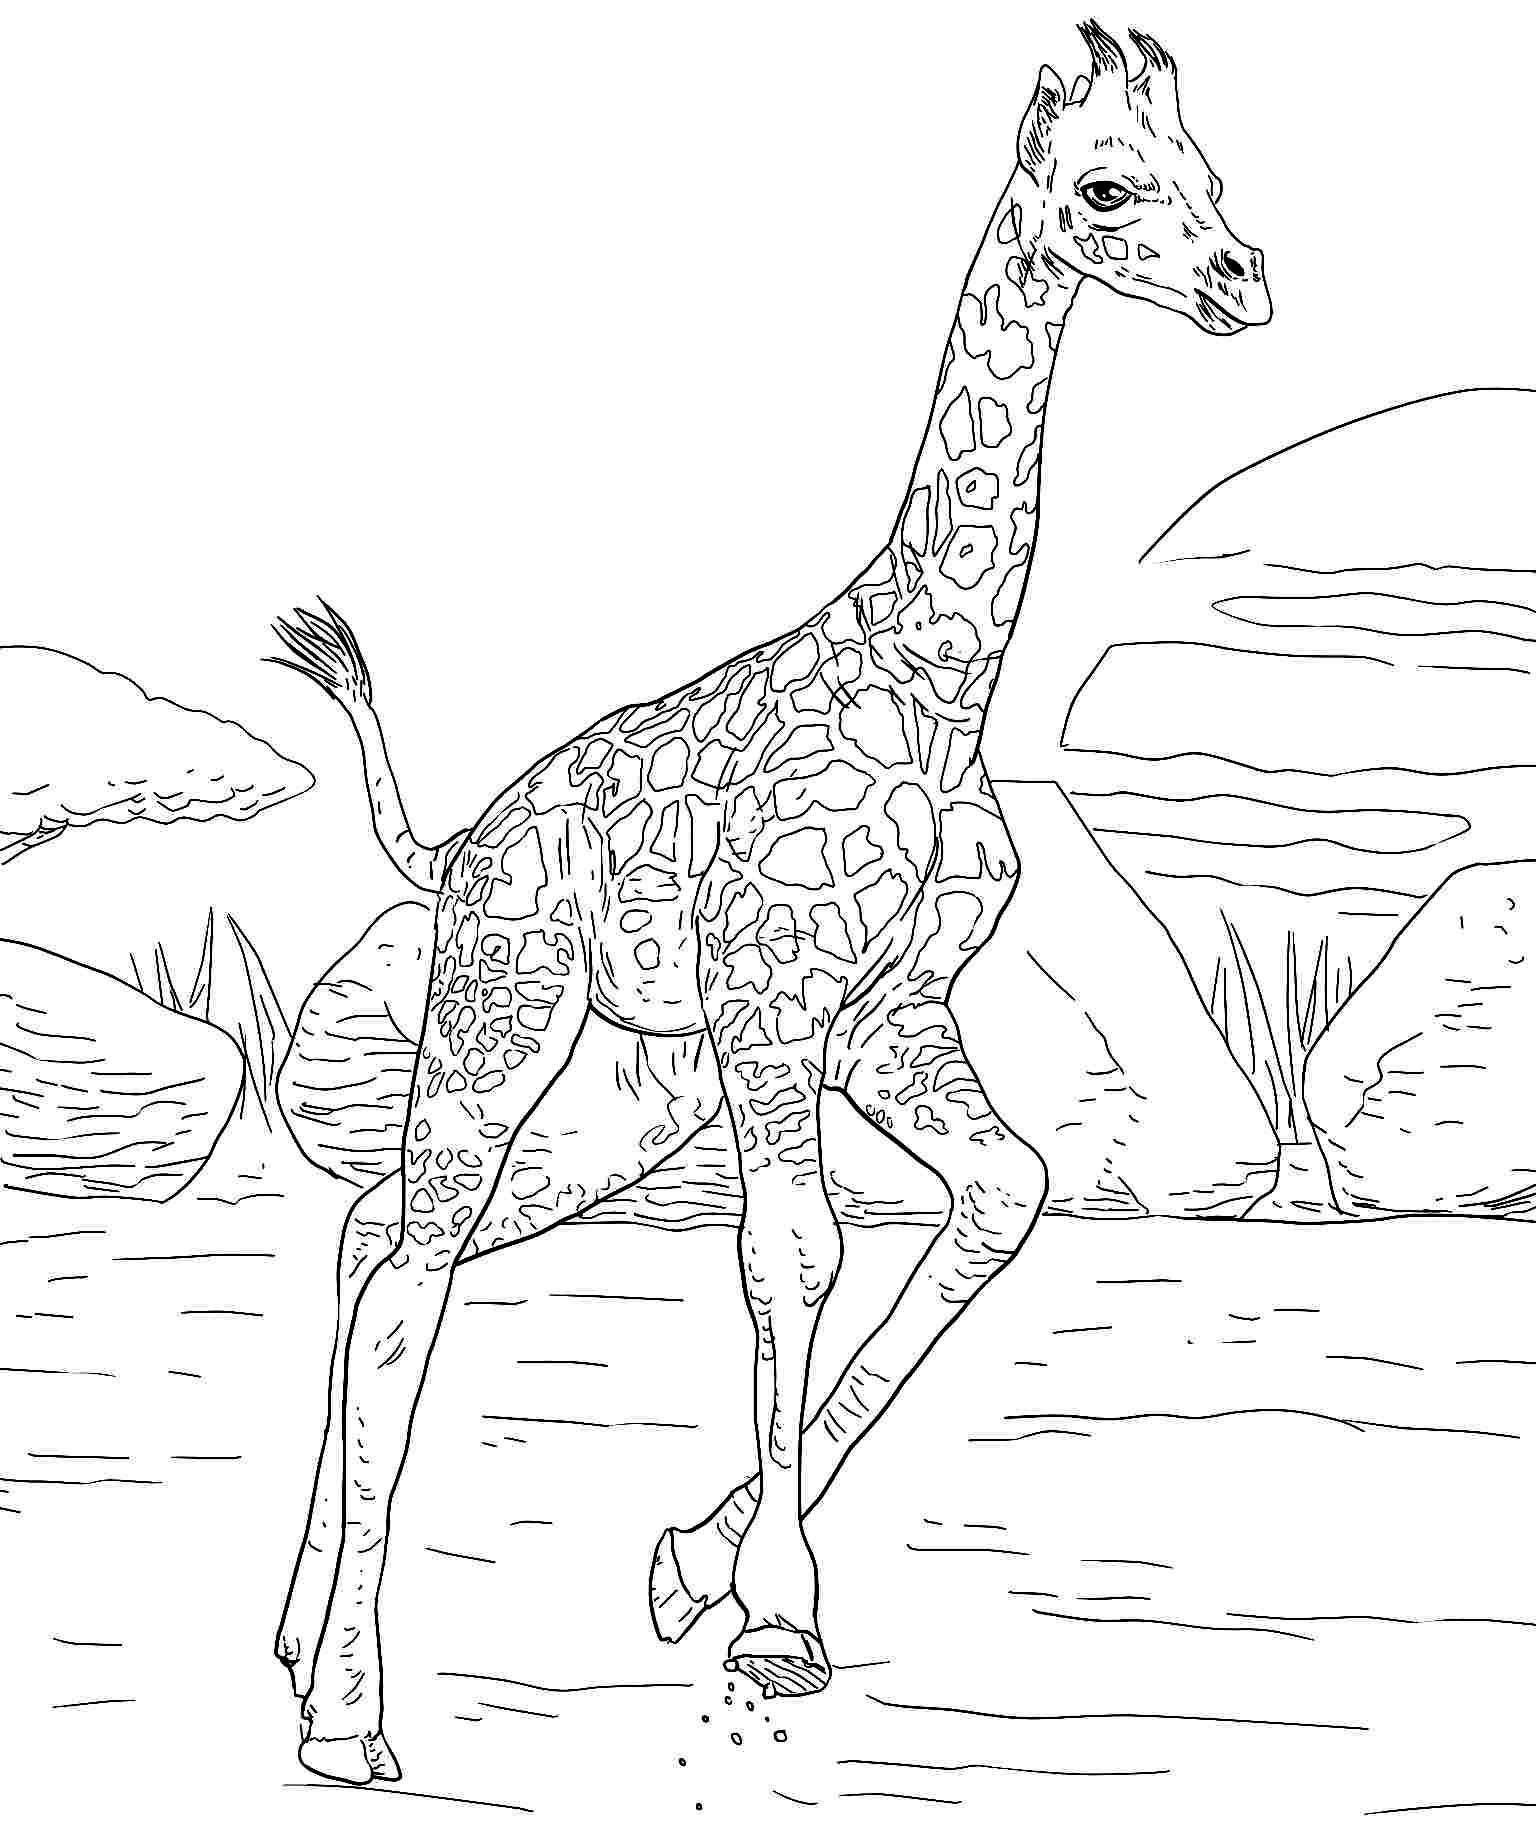 Color animals on pinterest coloring pages animal for Giraffe coloring pages to print